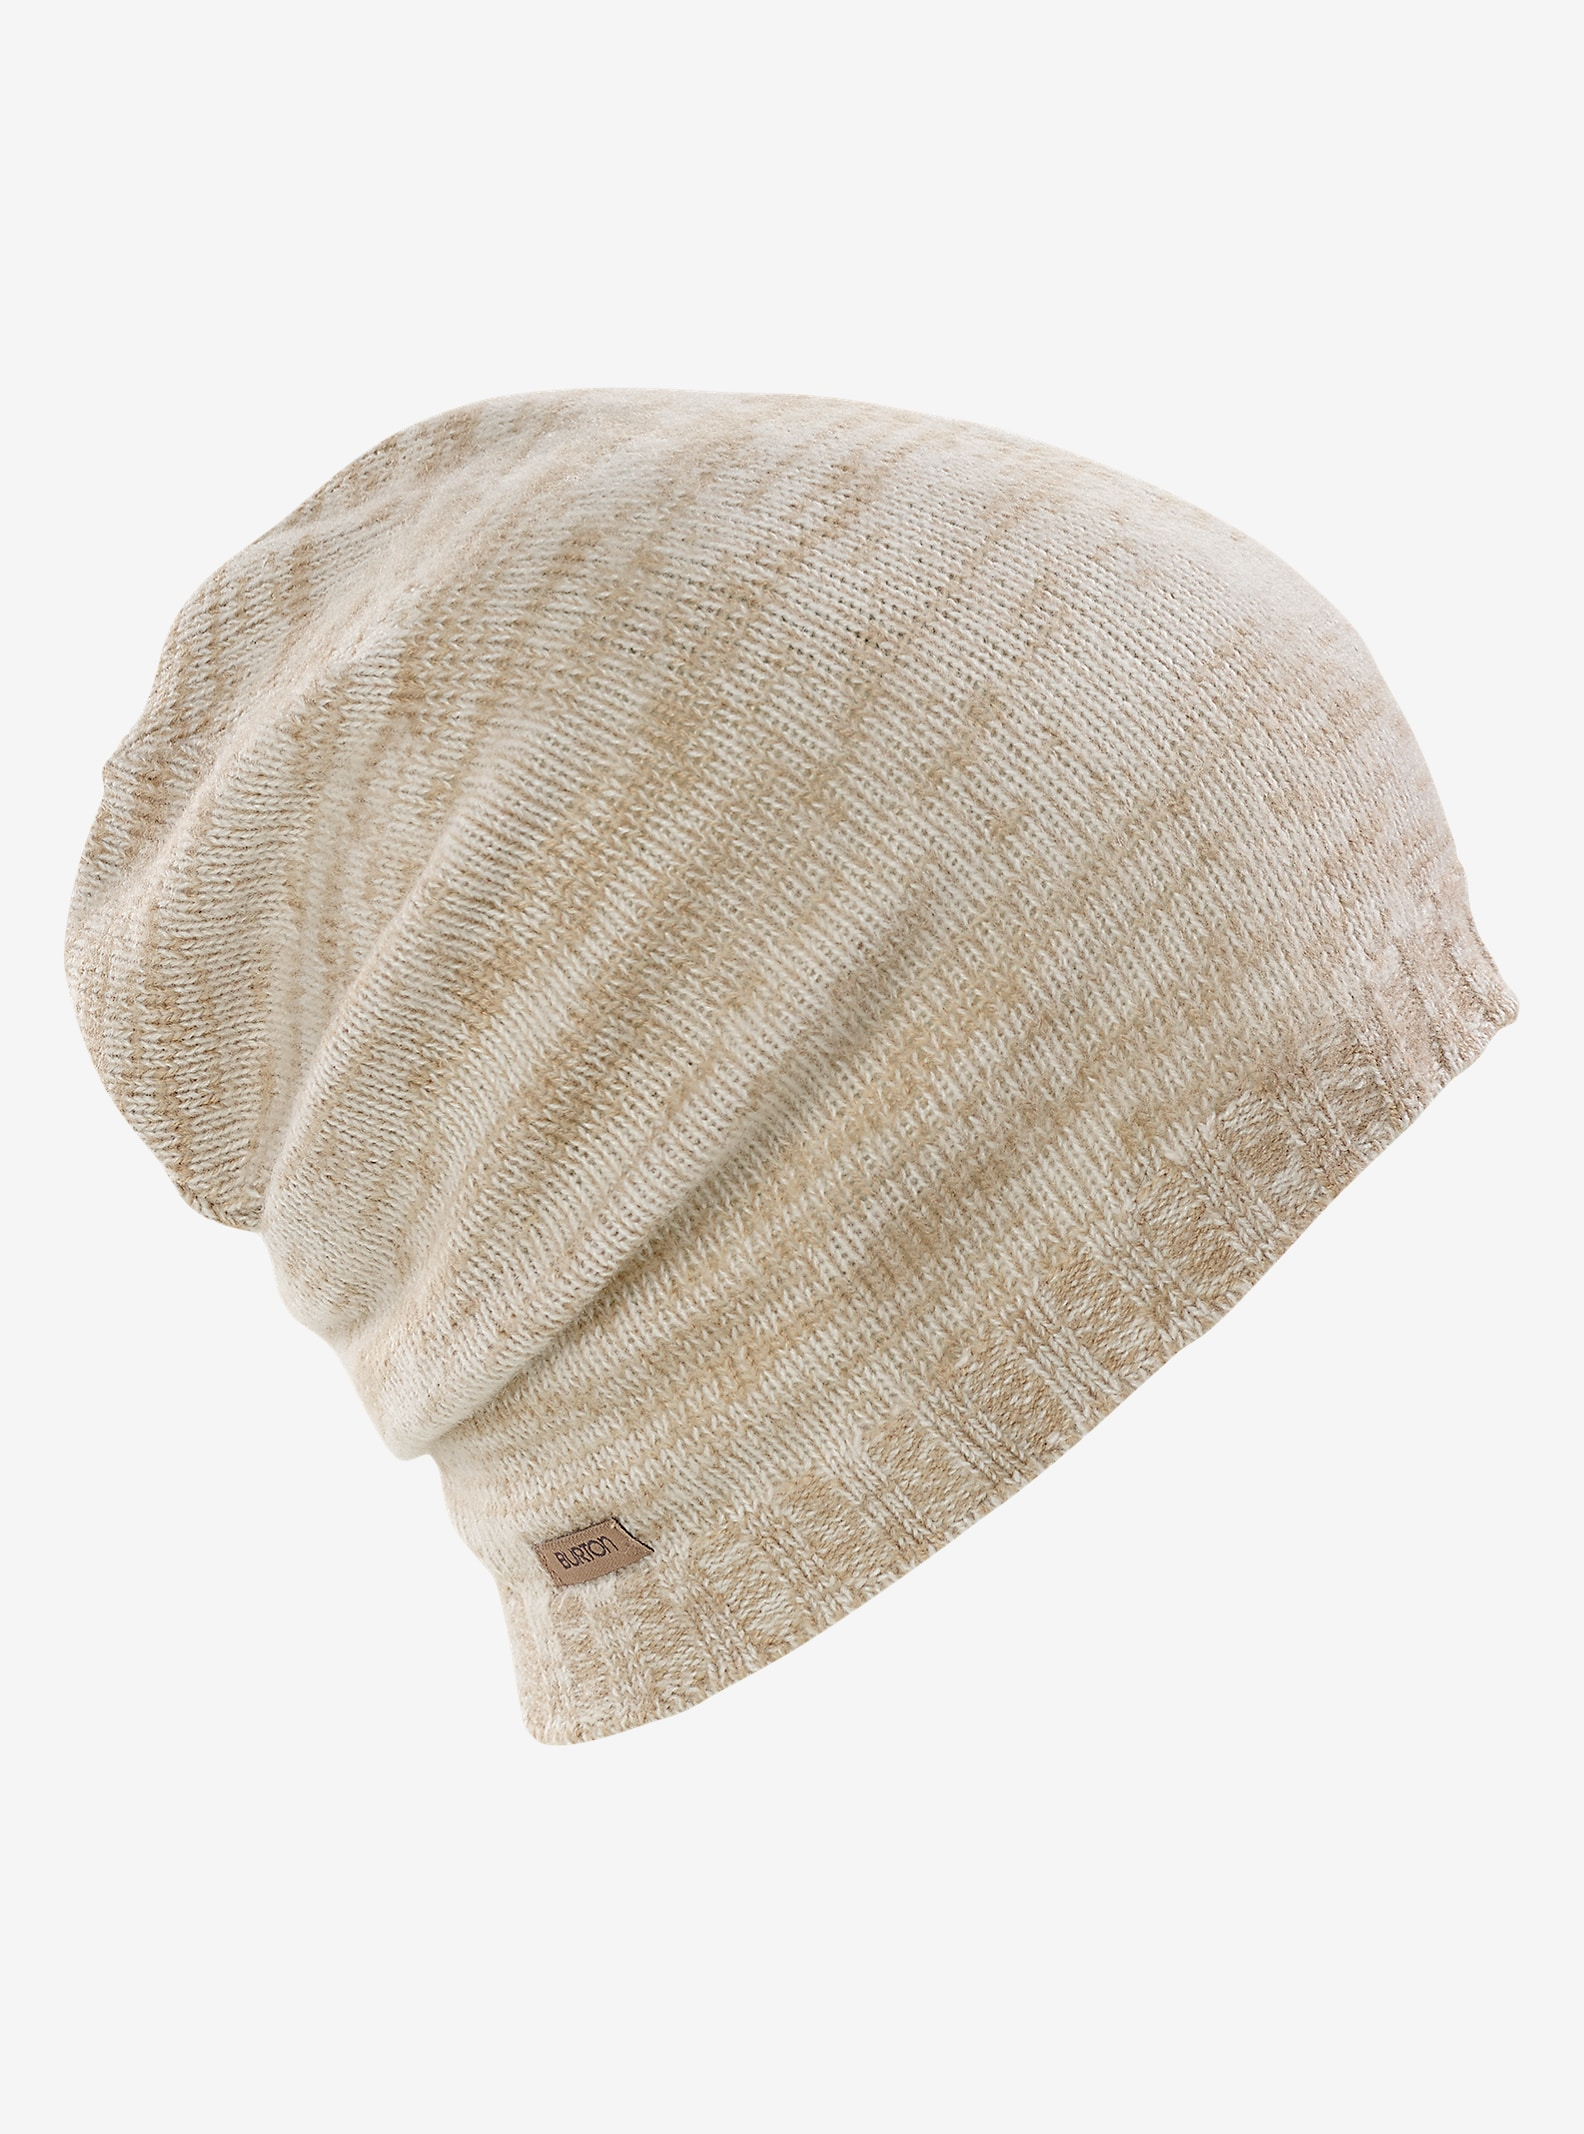 Burton Lighthart Beanie shown in Sandstruck Heather